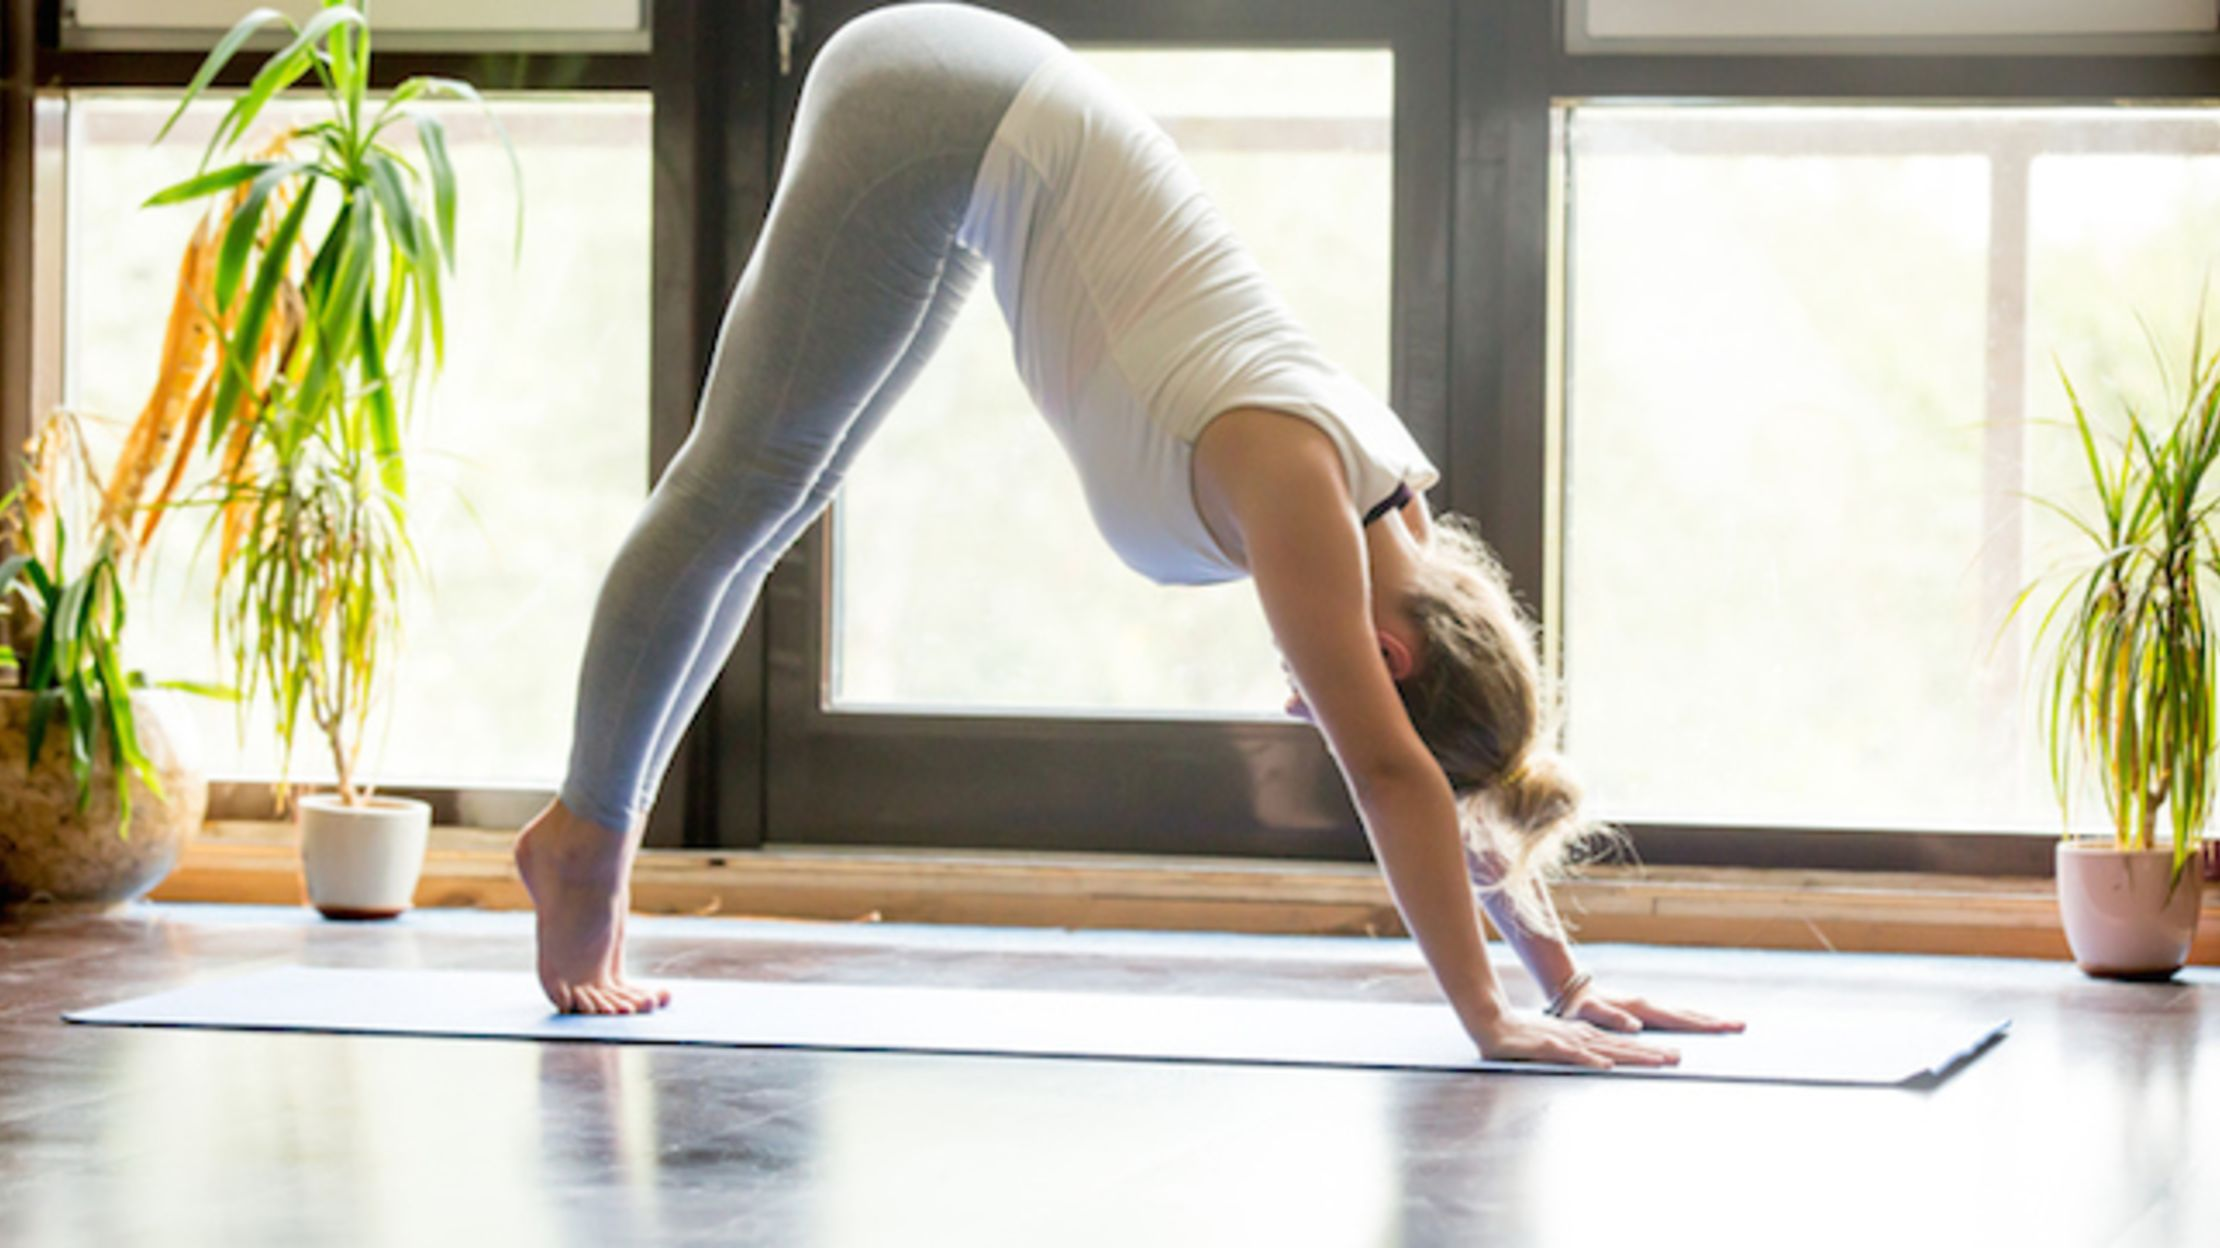 How to Turn Your Yoga Practice Into a HIIT Session